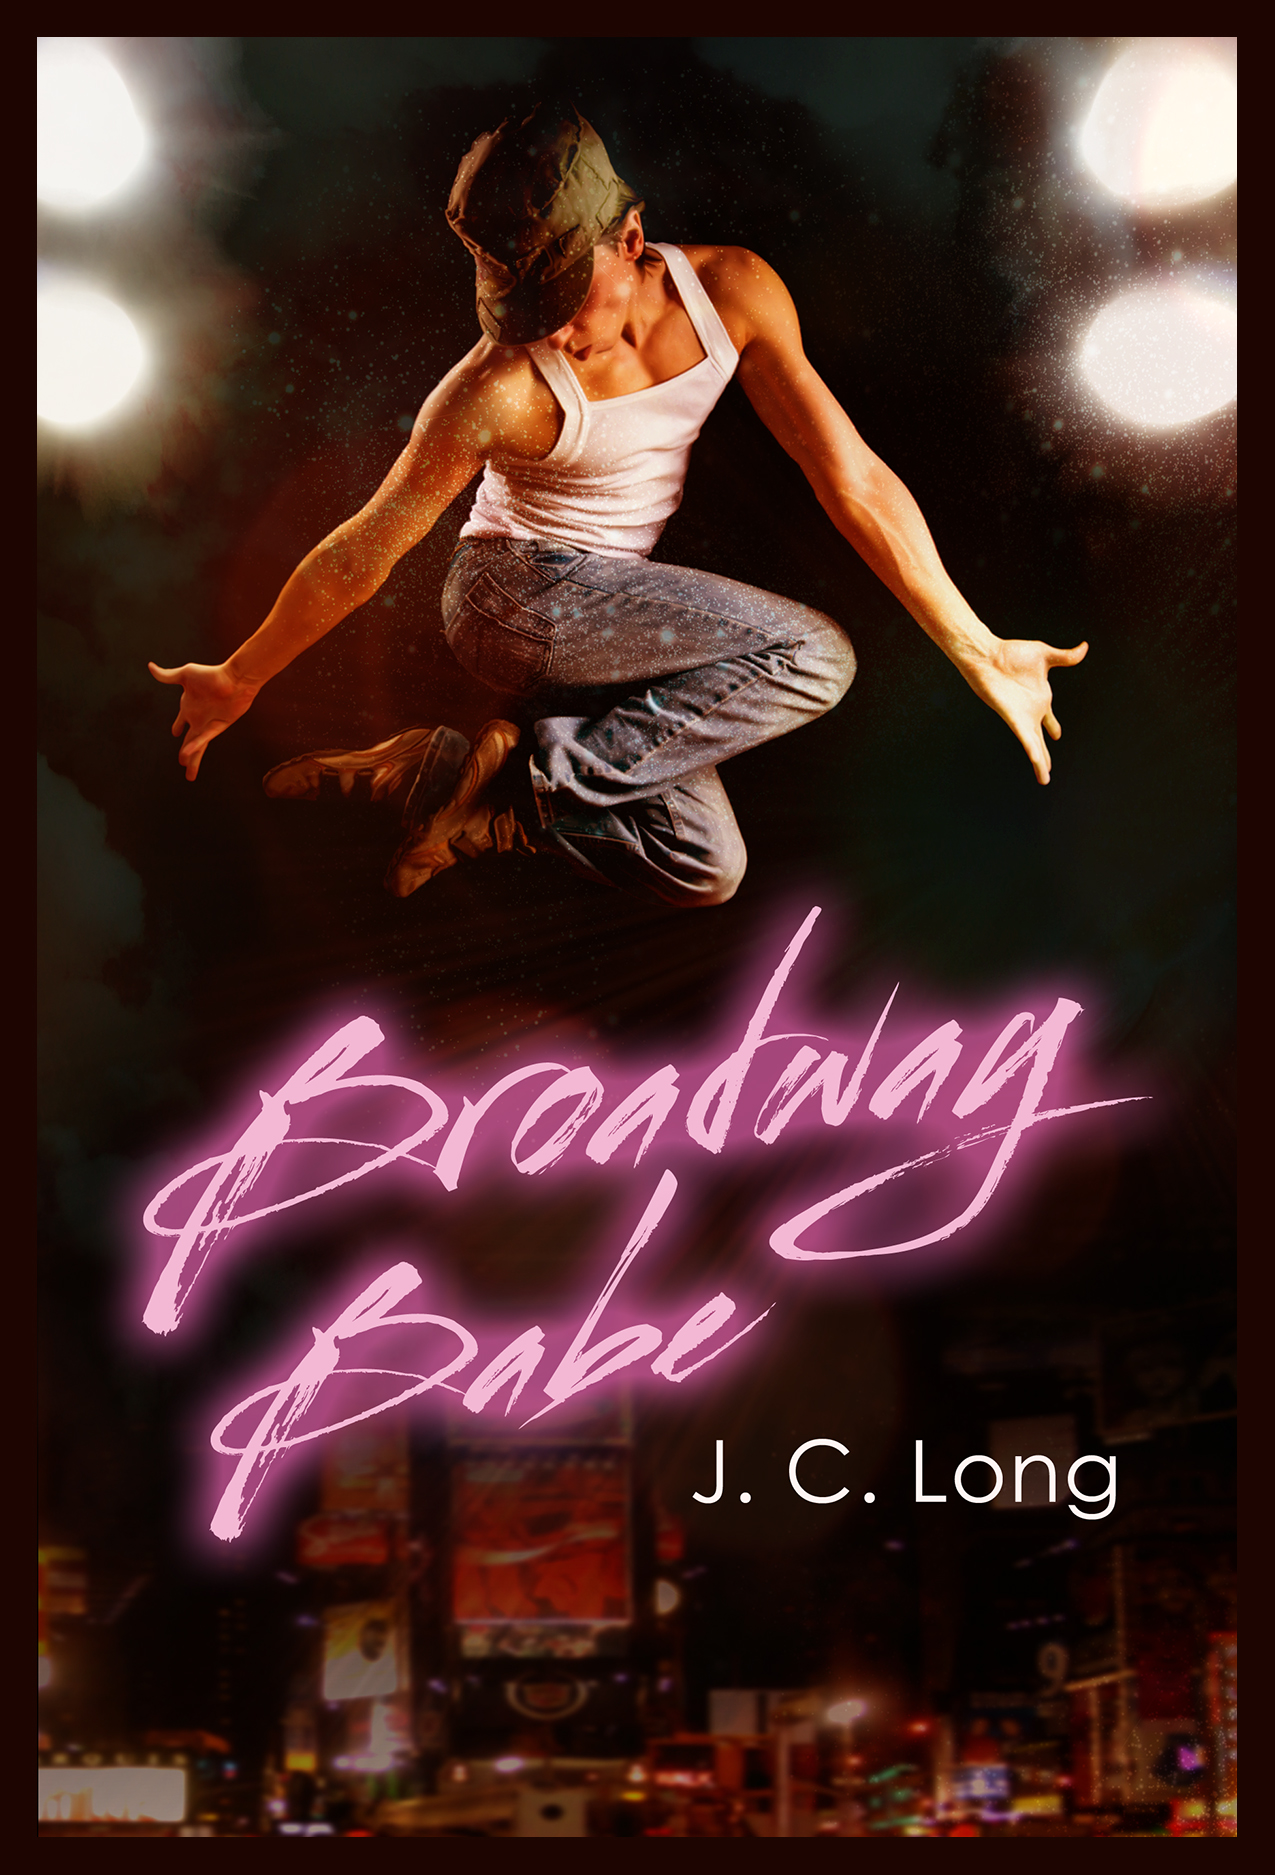 Broadway Babe by J. C. Long